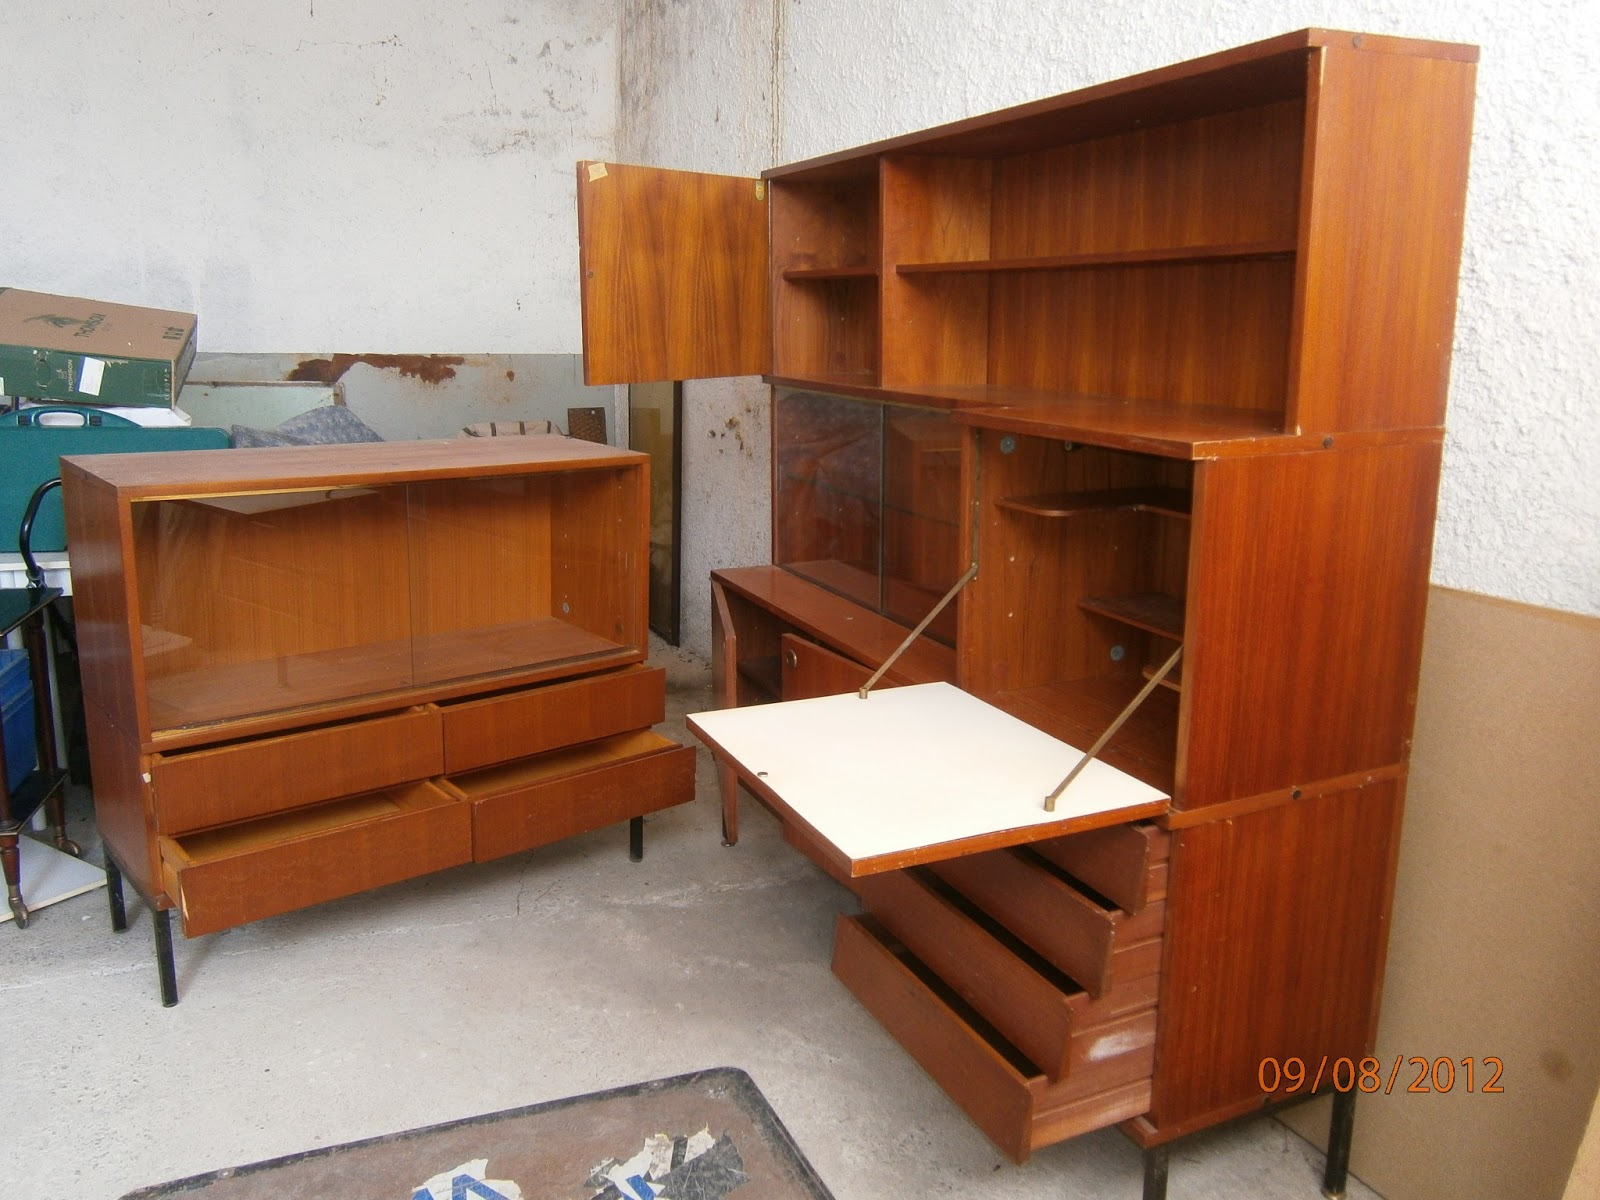 relooking de mes meubles vintage un atelier au fond des bois. Black Bedroom Furniture Sets. Home Design Ideas